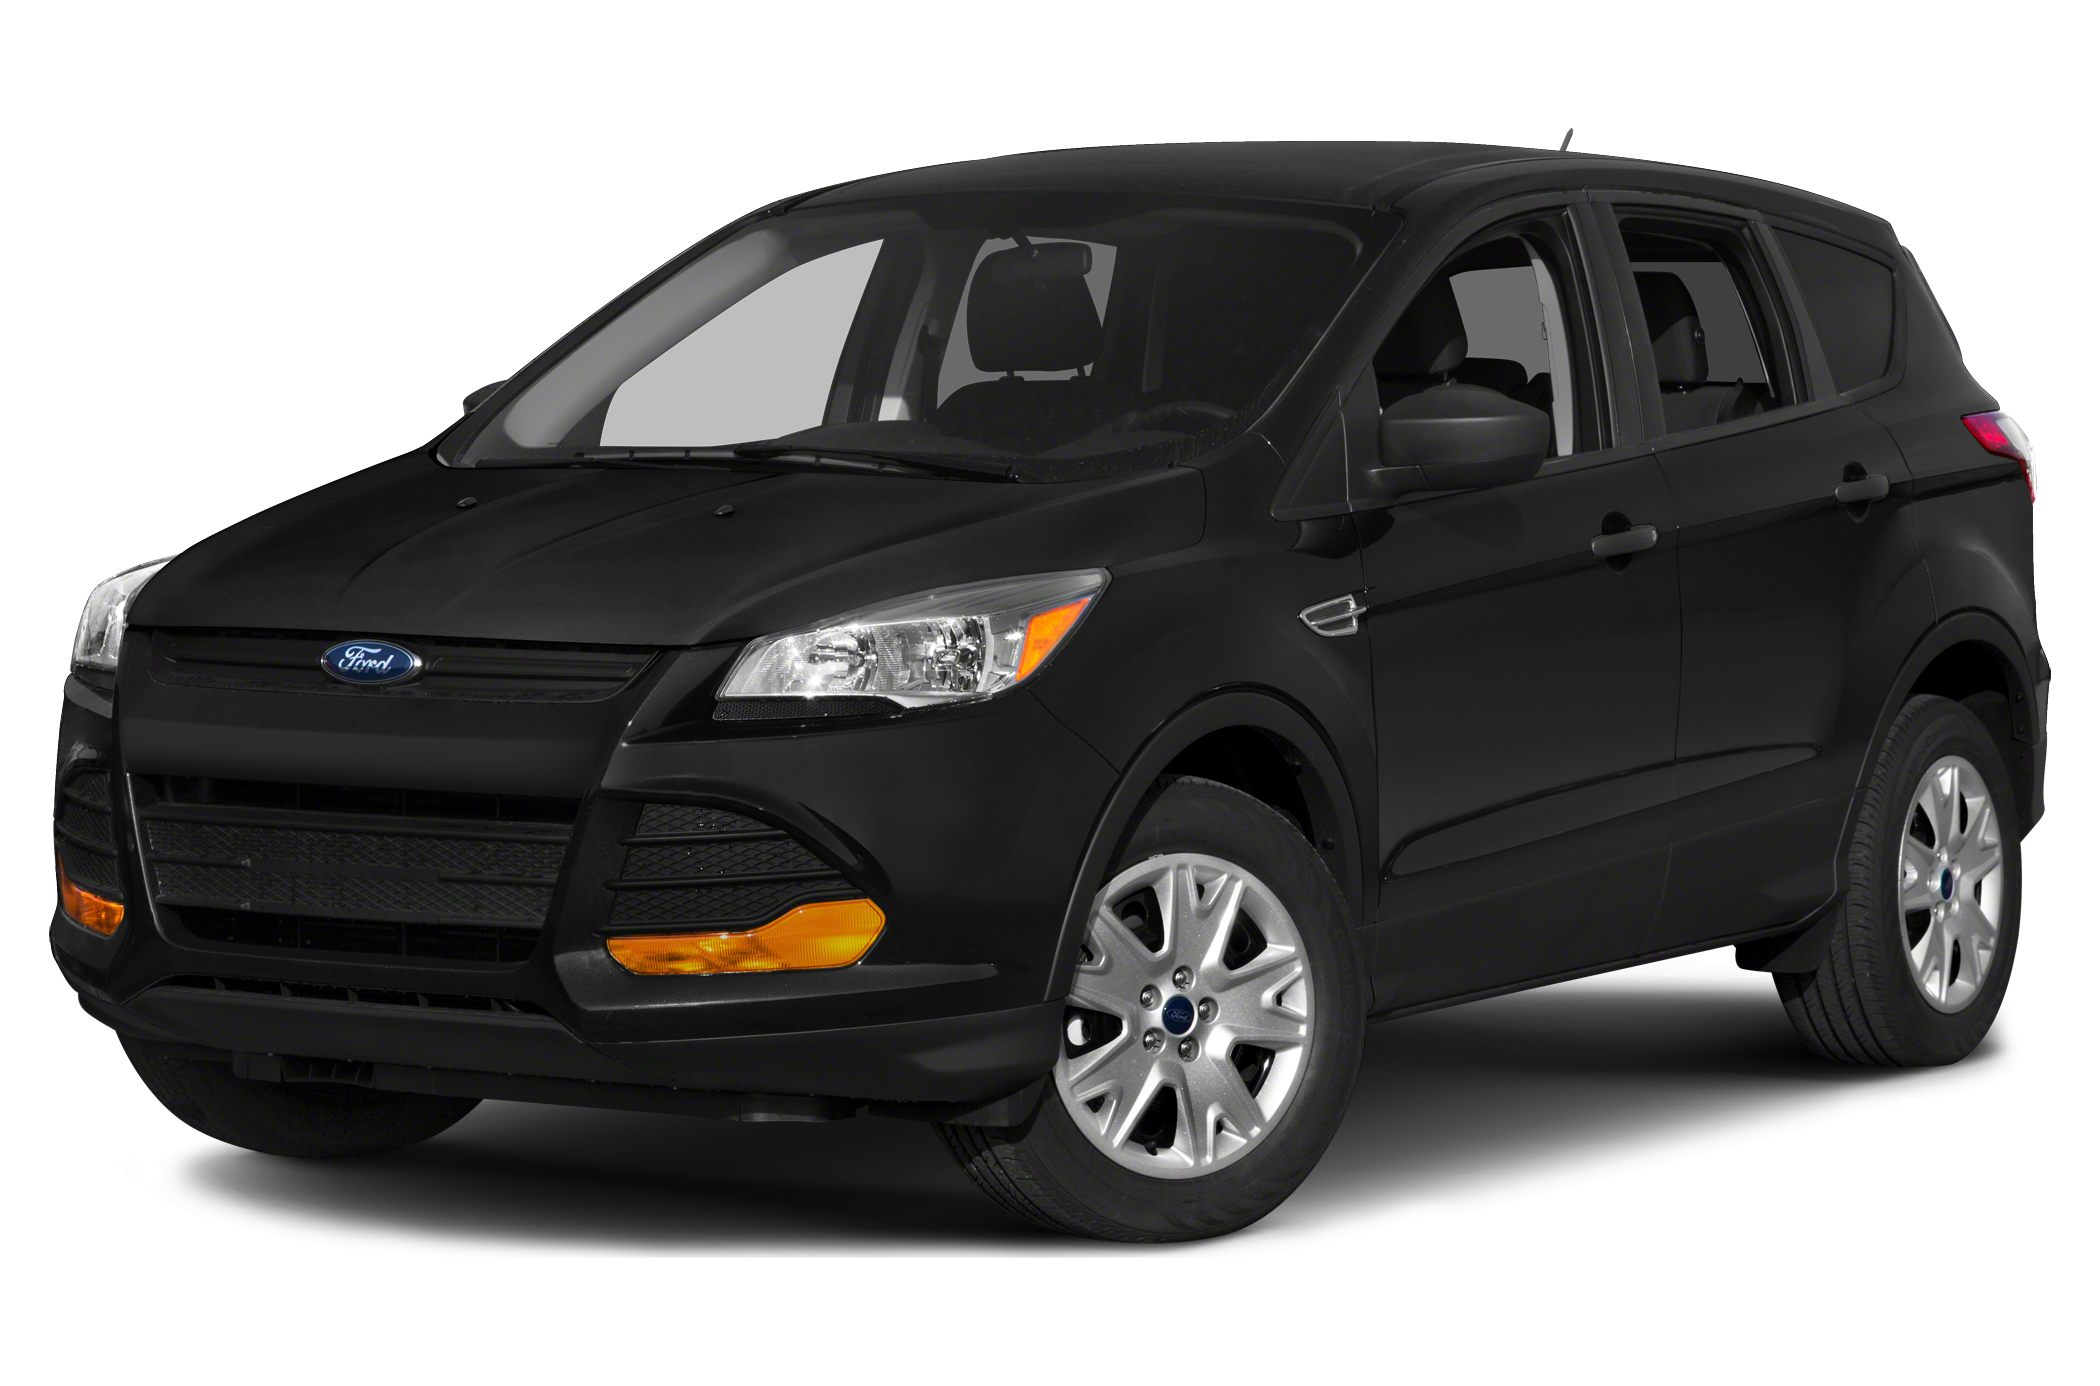 2015 Ford Escape Titanium SUV for sale in Philadelphia for $32,350 with 5 miles.